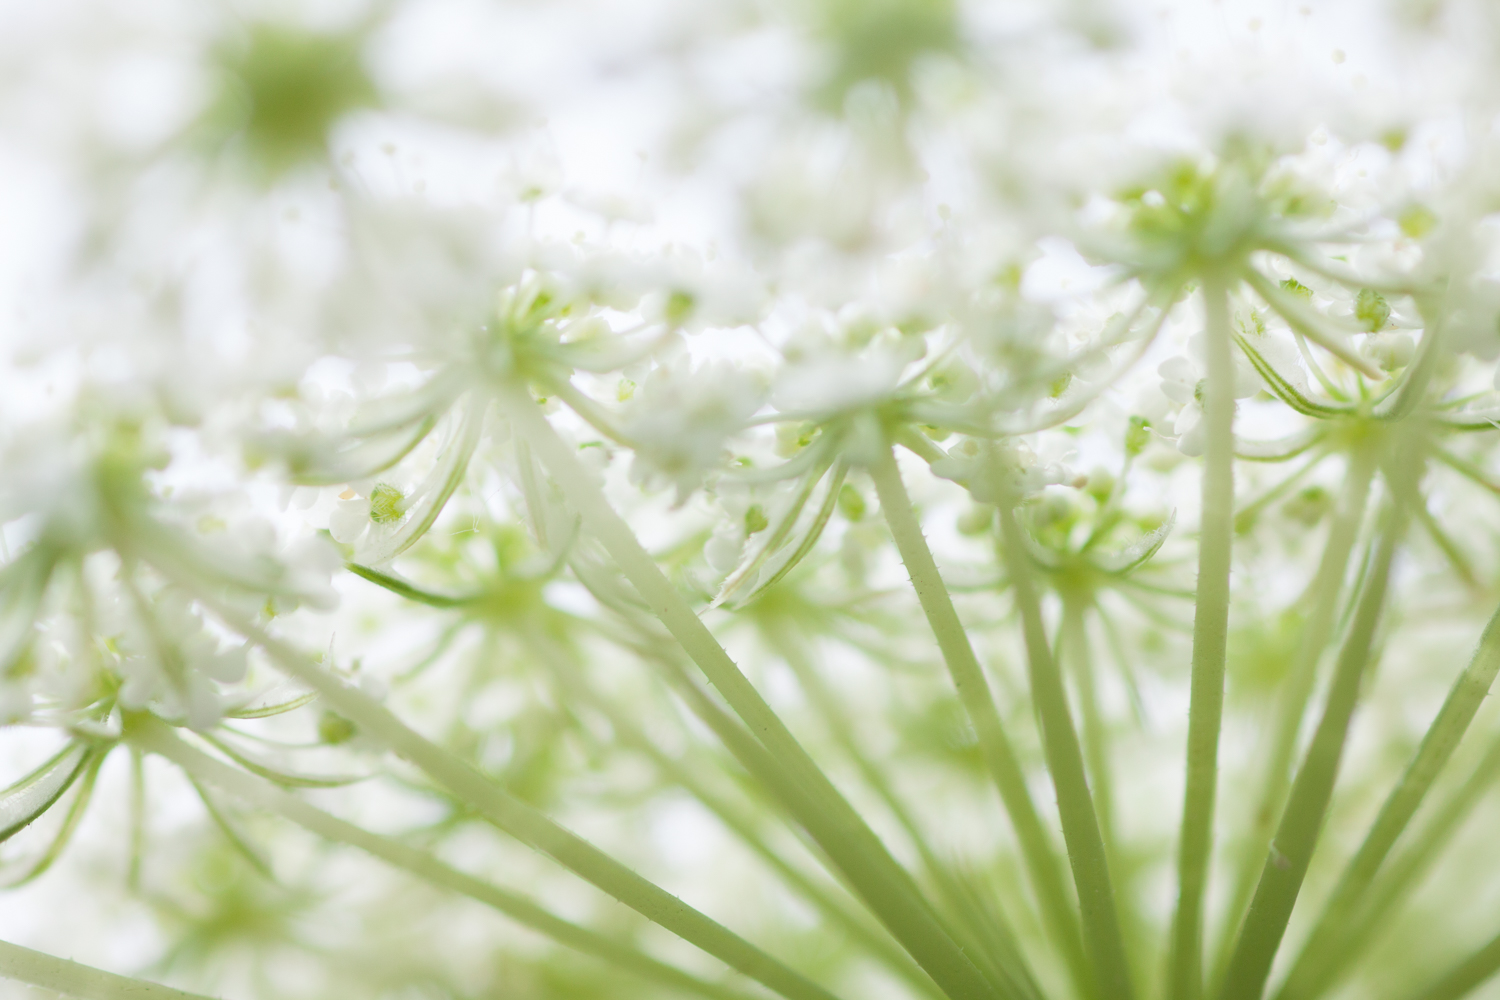 Macro image of a green and white plant